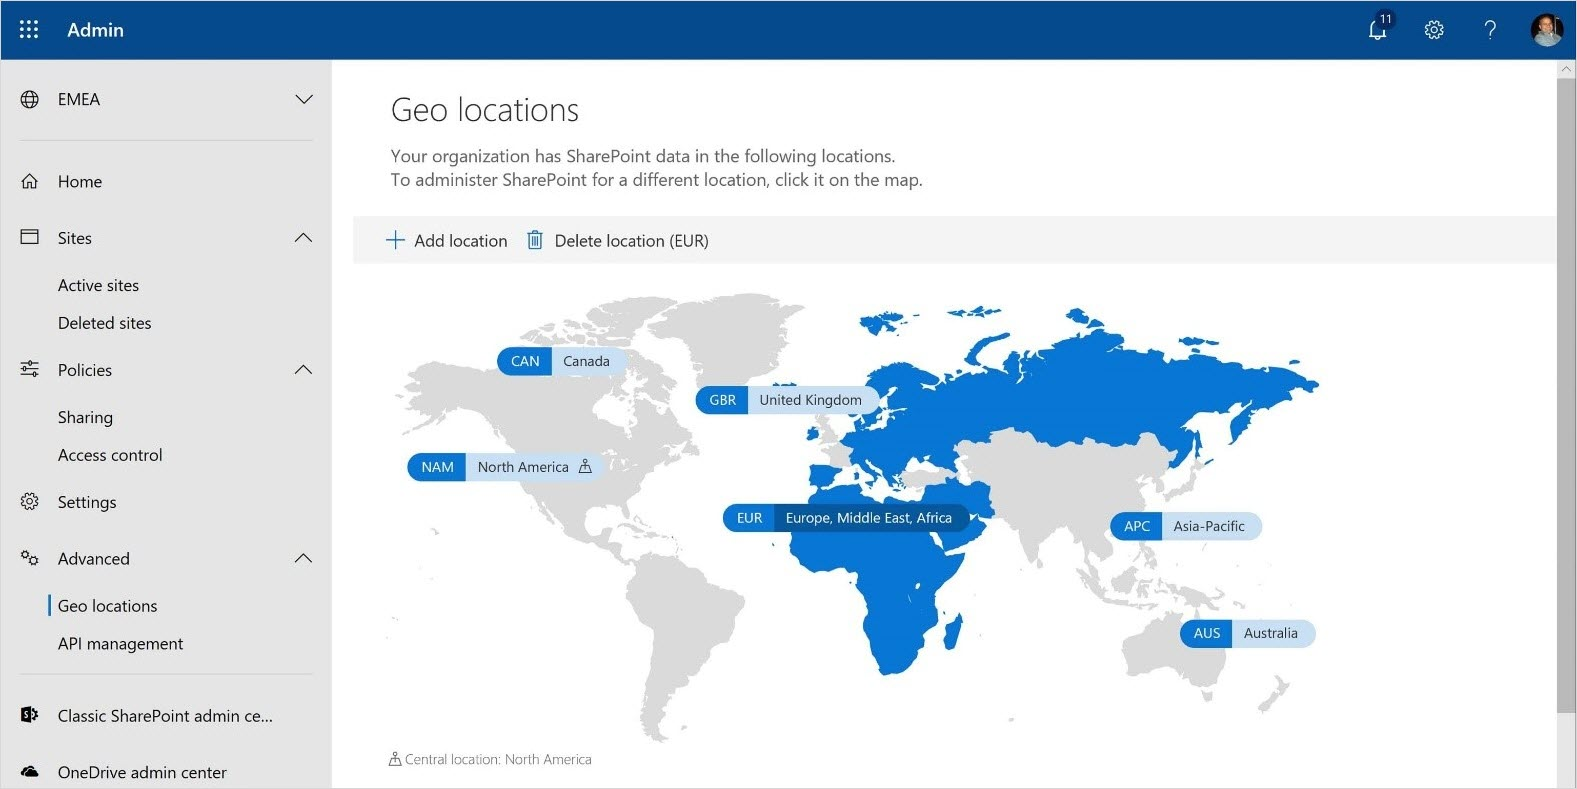 Image shows Multi-Geo capabilities in Office 365.